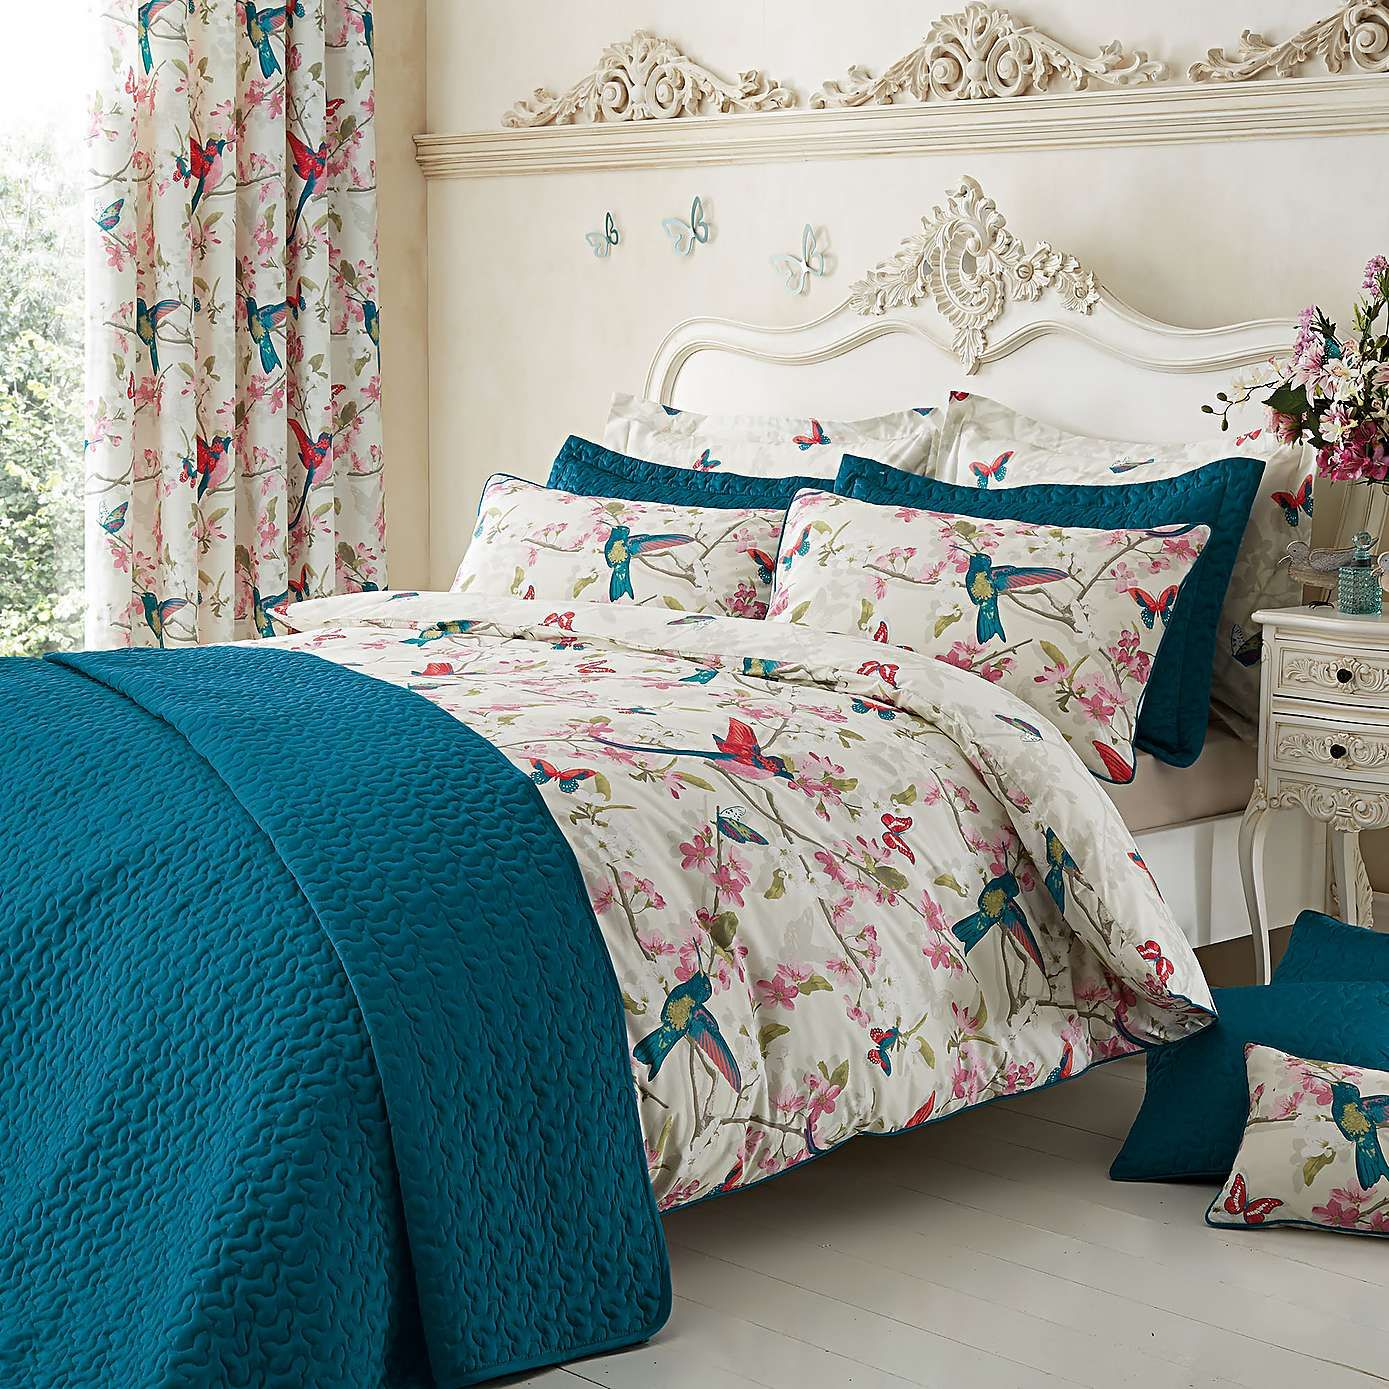 Nice Hummingbird Bed Linen Part - 6: Hummingbird Luxury Duvet Set Cover Romantic French Style Birds Single Duck  Egg In Home, Furniture U0026 DIY, Bedding, Bed Linens U0026 Sets